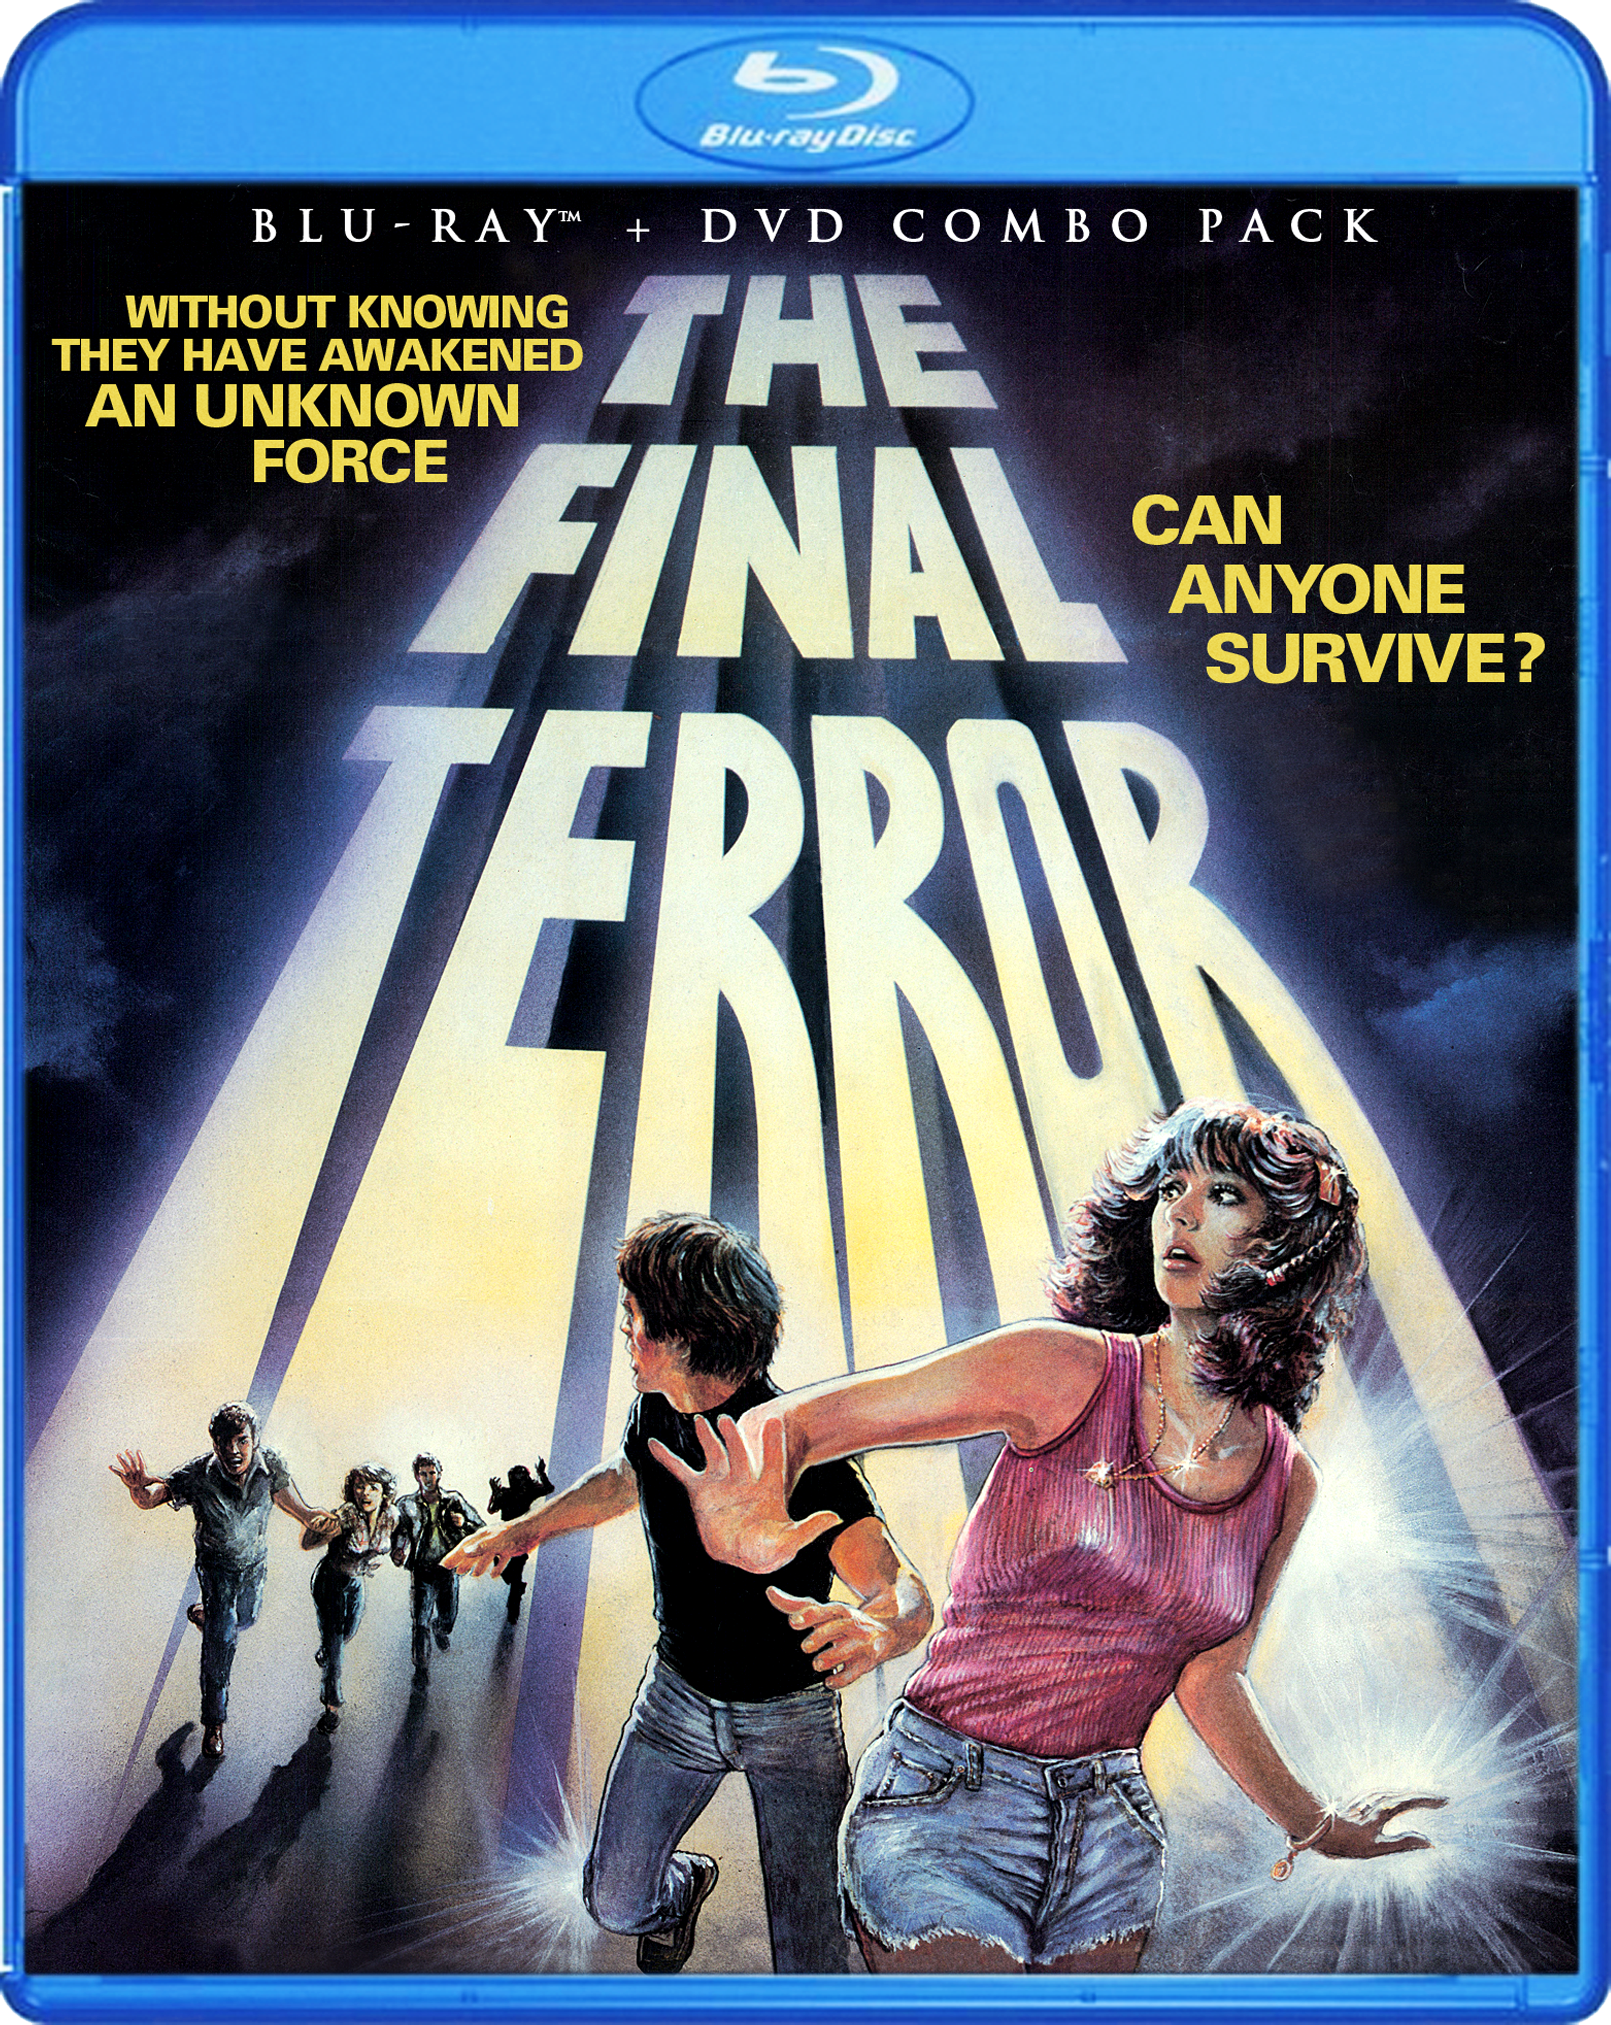 FinalTerrorCover300dpi.png